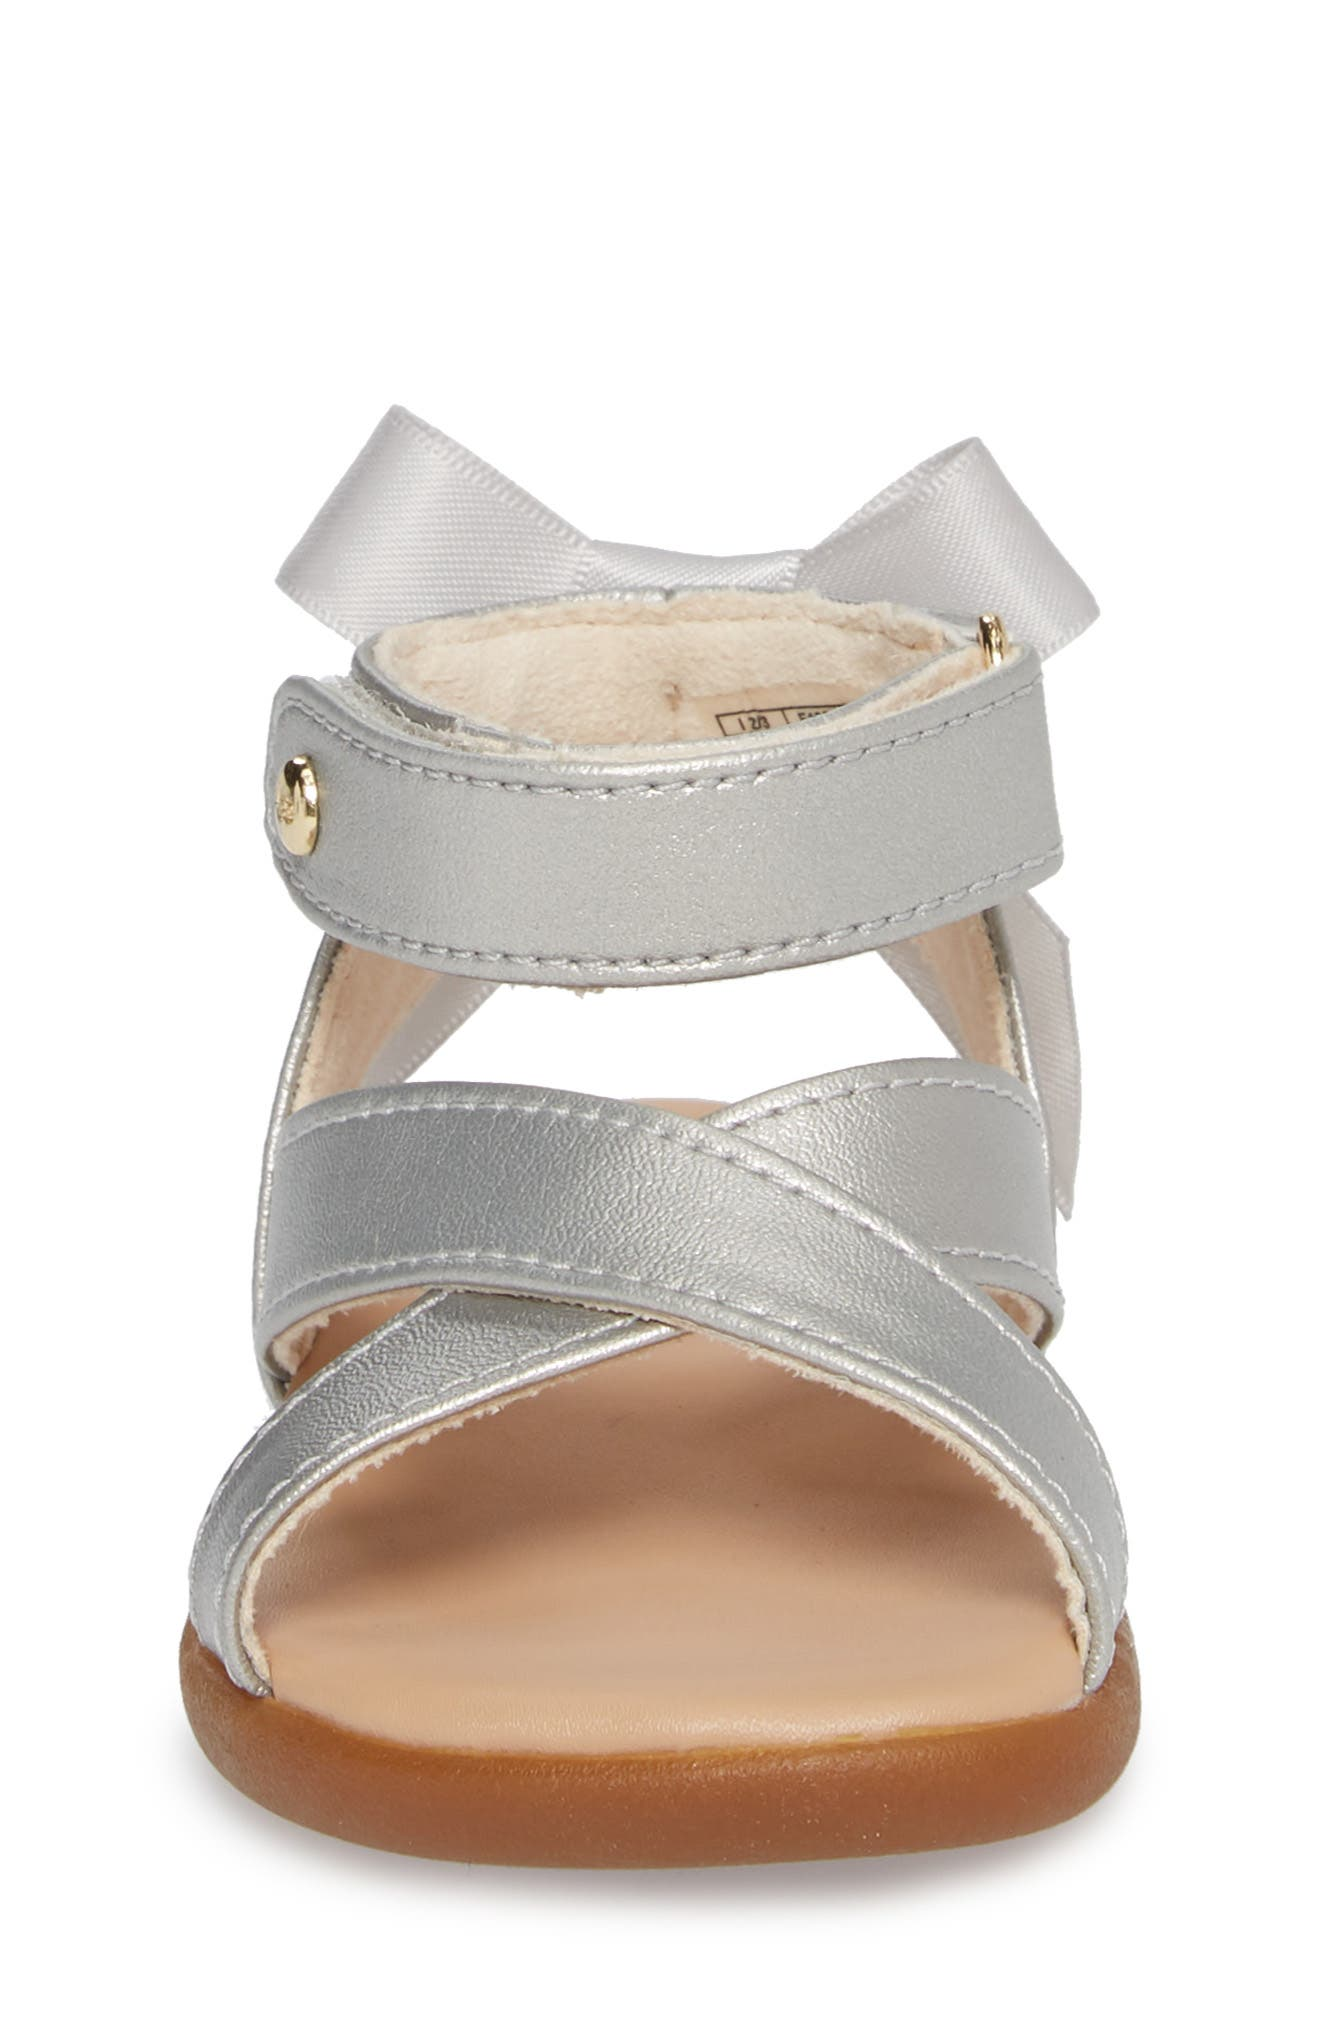 Maggiepie Sparkles Sandal,                             Alternate thumbnail 4, color,                             Silver